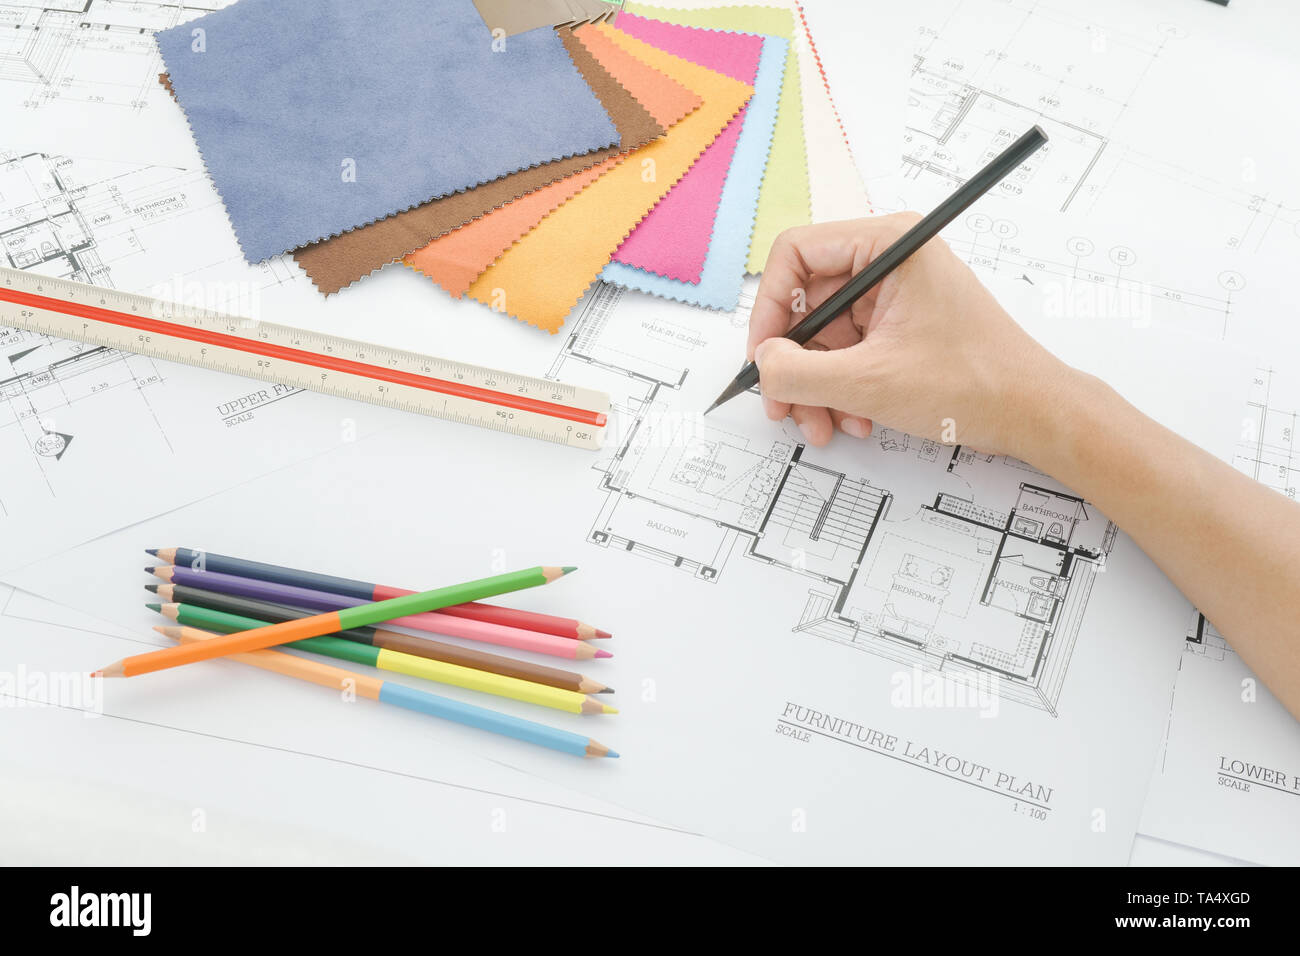 Hand writing on architectural plan with fabric sample on interior designer working table - Stock Image